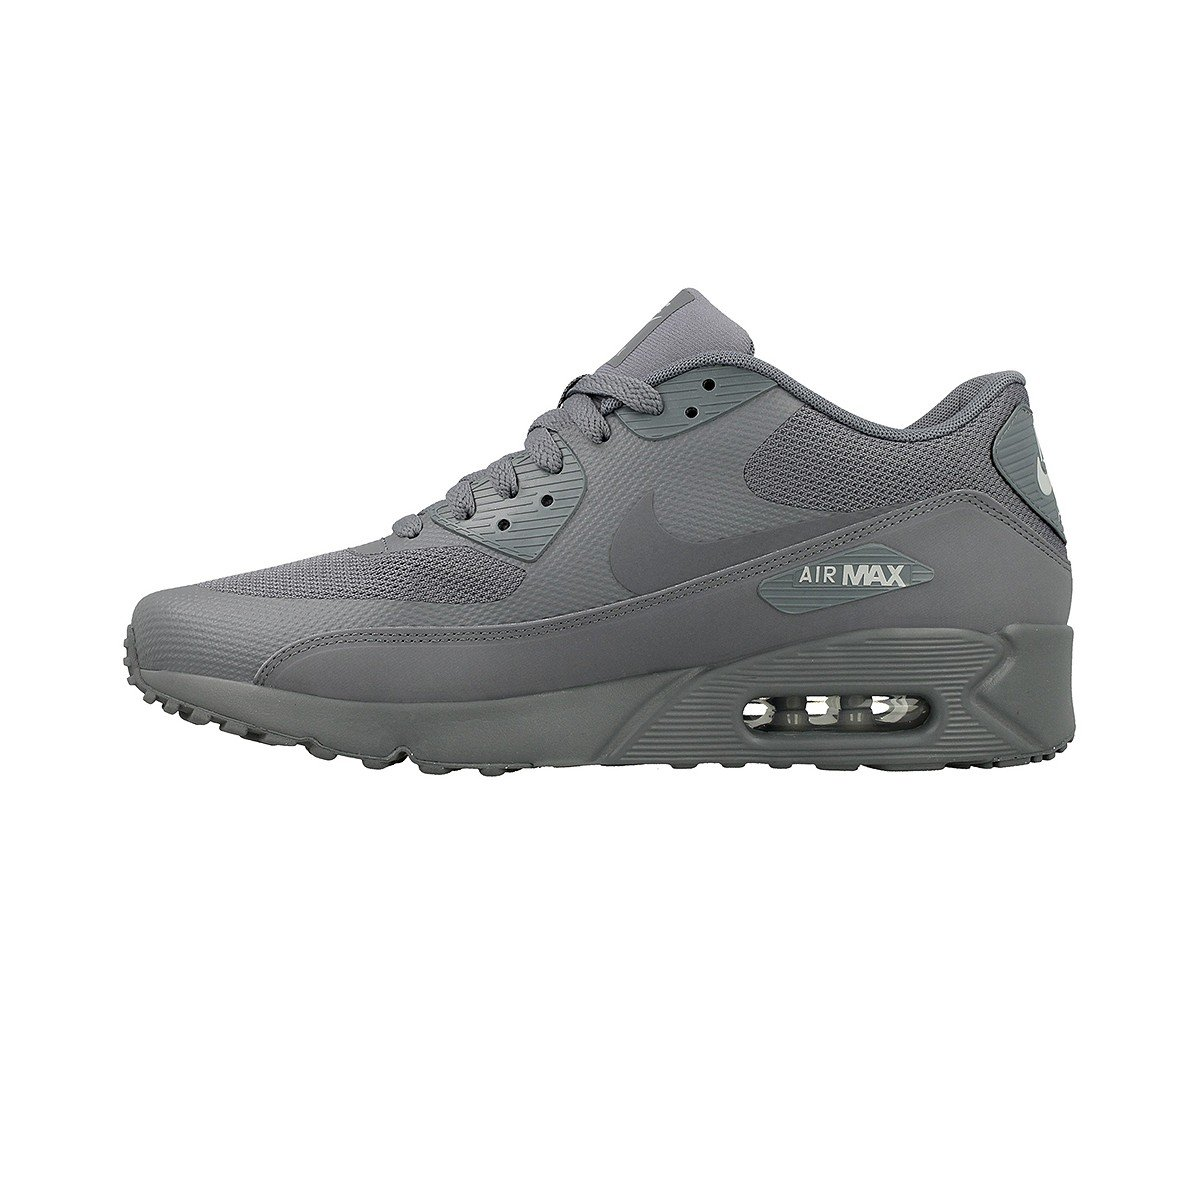 low priced f45a0 e62d5 Nike Air Max 90 Ultra Ultra Ultra 2.0 Essential Mens Running Trainers  875695 Sneakers Shoes (UK 6 US 7 EU 40, Cool Grey 003) 7 M US Cool Grey 003  B06X15WJXY ...